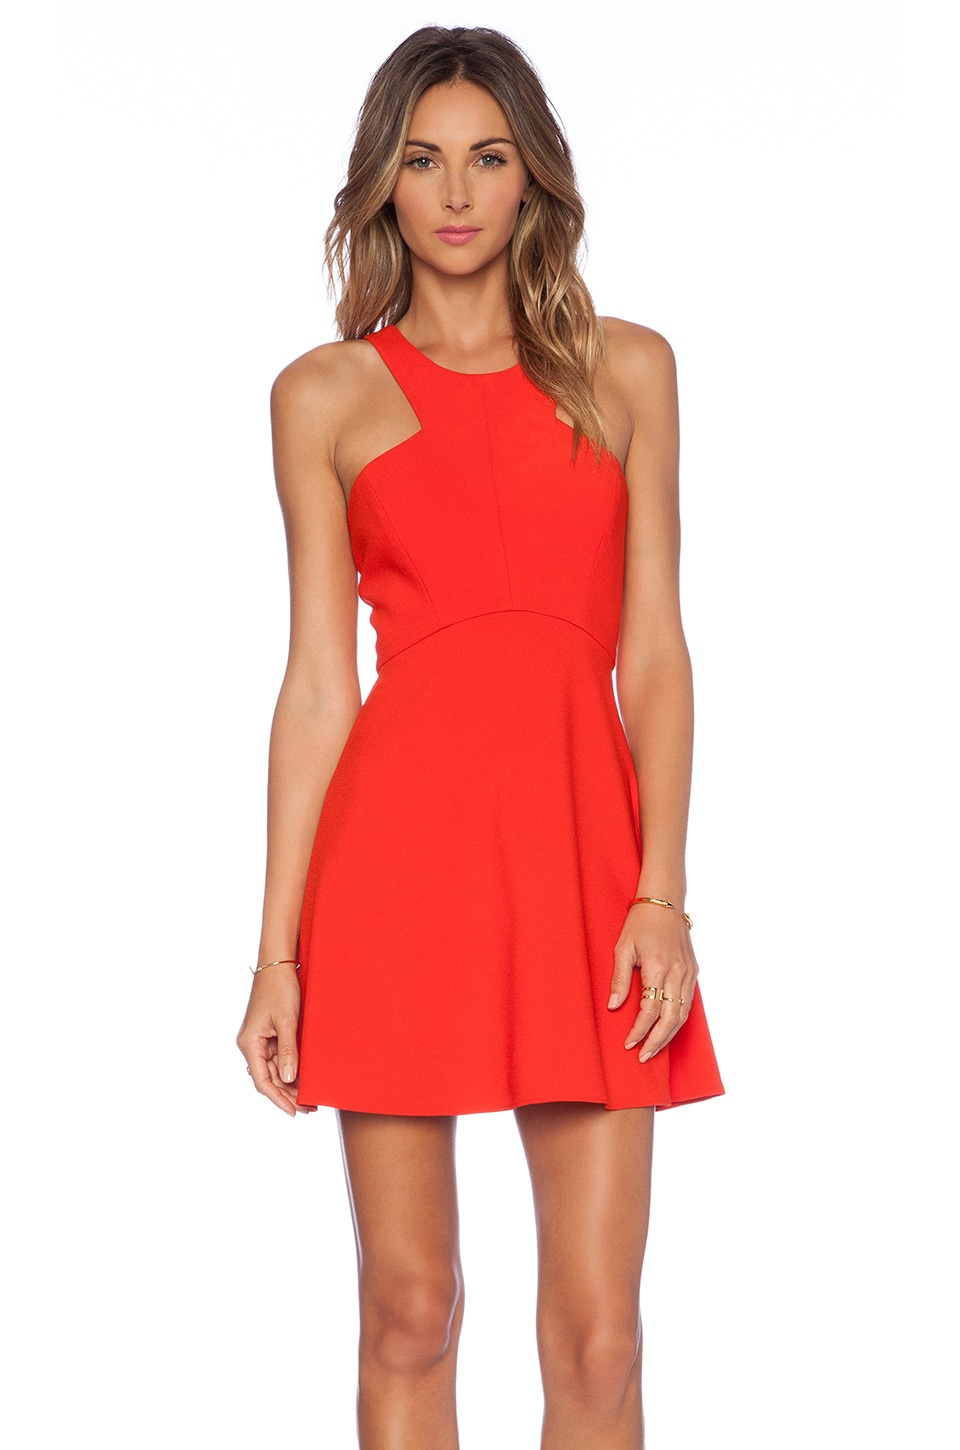 NBD x Naven Twins Believe Me Skater Dress in Poppy Red